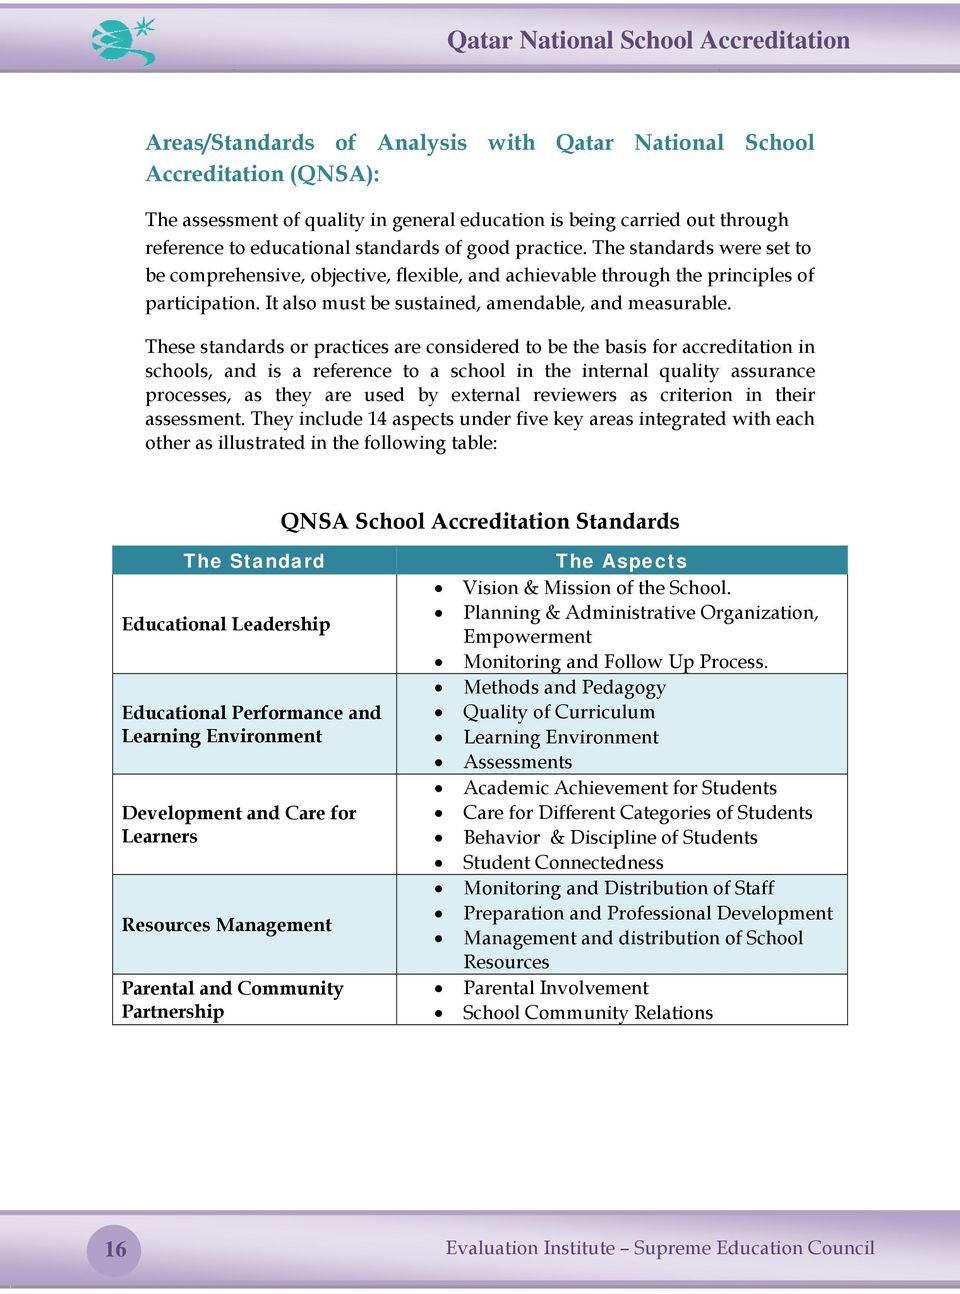 These standards or practices are considered to be the basis for accreditation in schools, and is a reference to a school in the internal quality assurance processes, as they are used by external